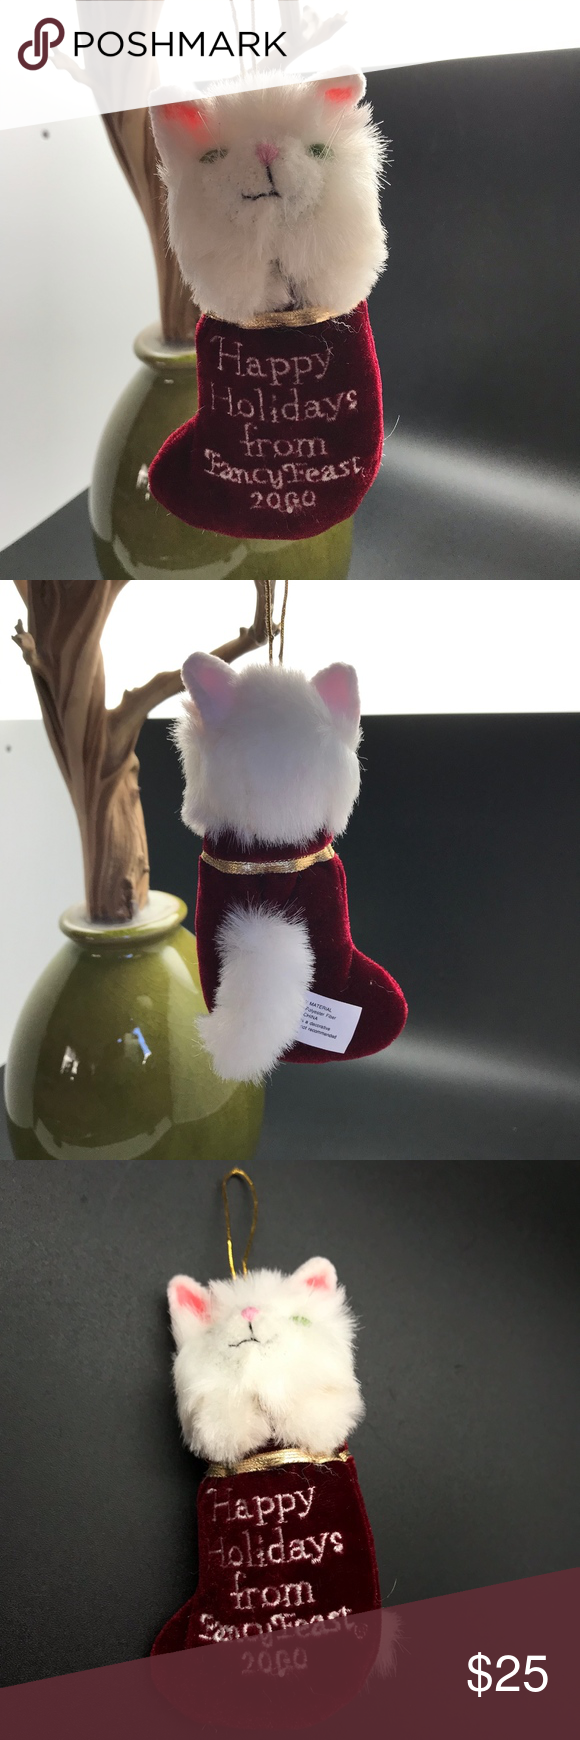 Fancy Feast Christmas Ornament 2020 2000 Fancy Feast Collectible Christmas Ornament in 2020